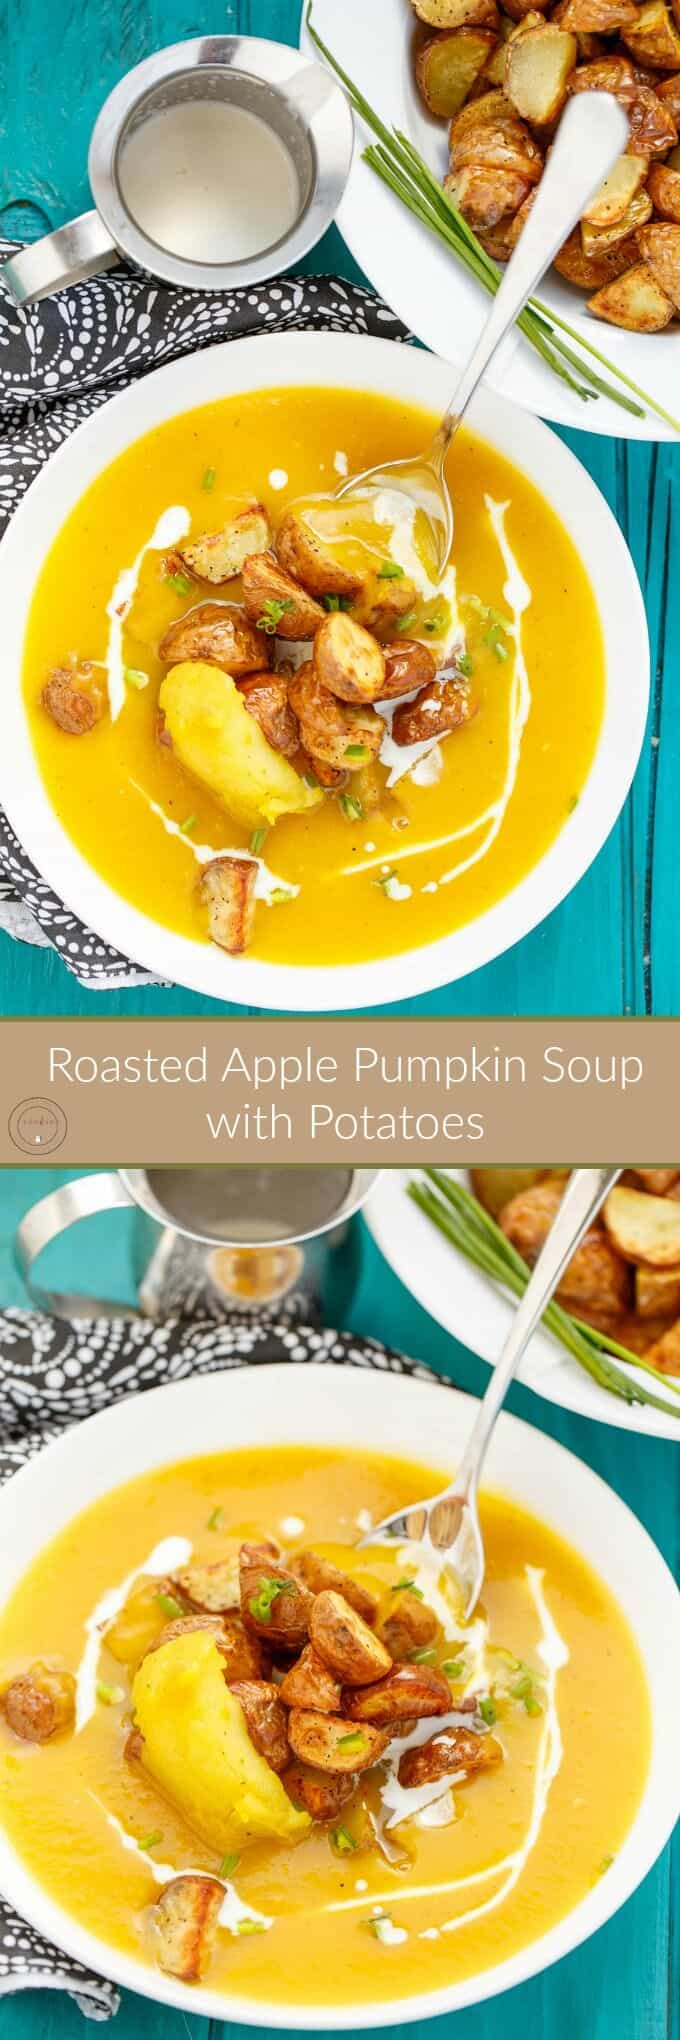 Roasted Apple Pumpkin Soup with Potatoes